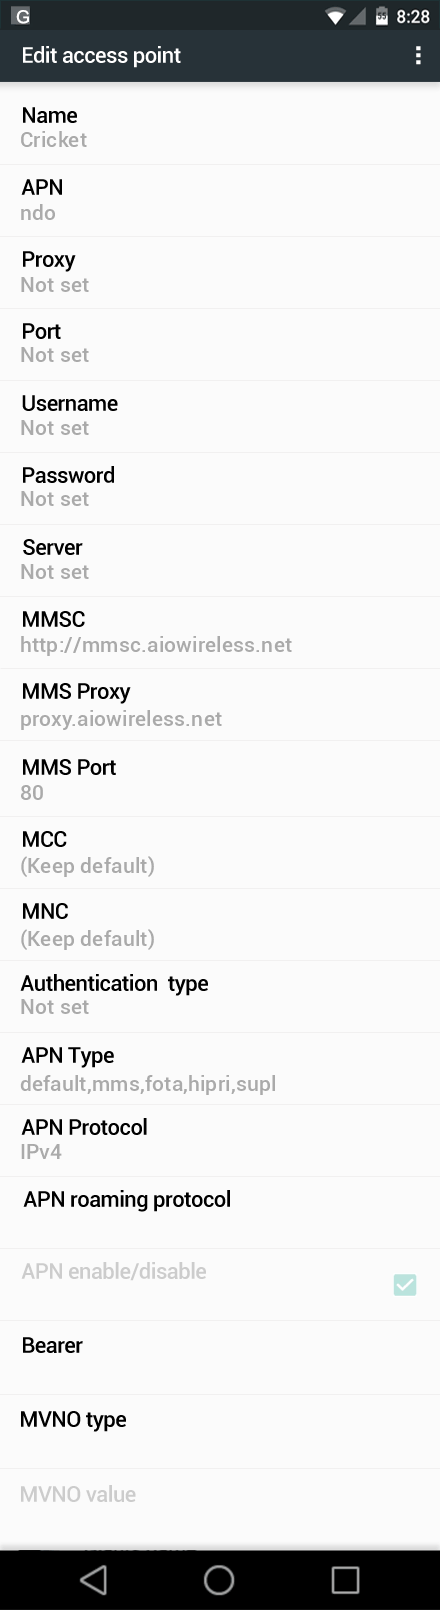 Cricket Samsung Galaxy S7 Internet and MMS APN Settings ...